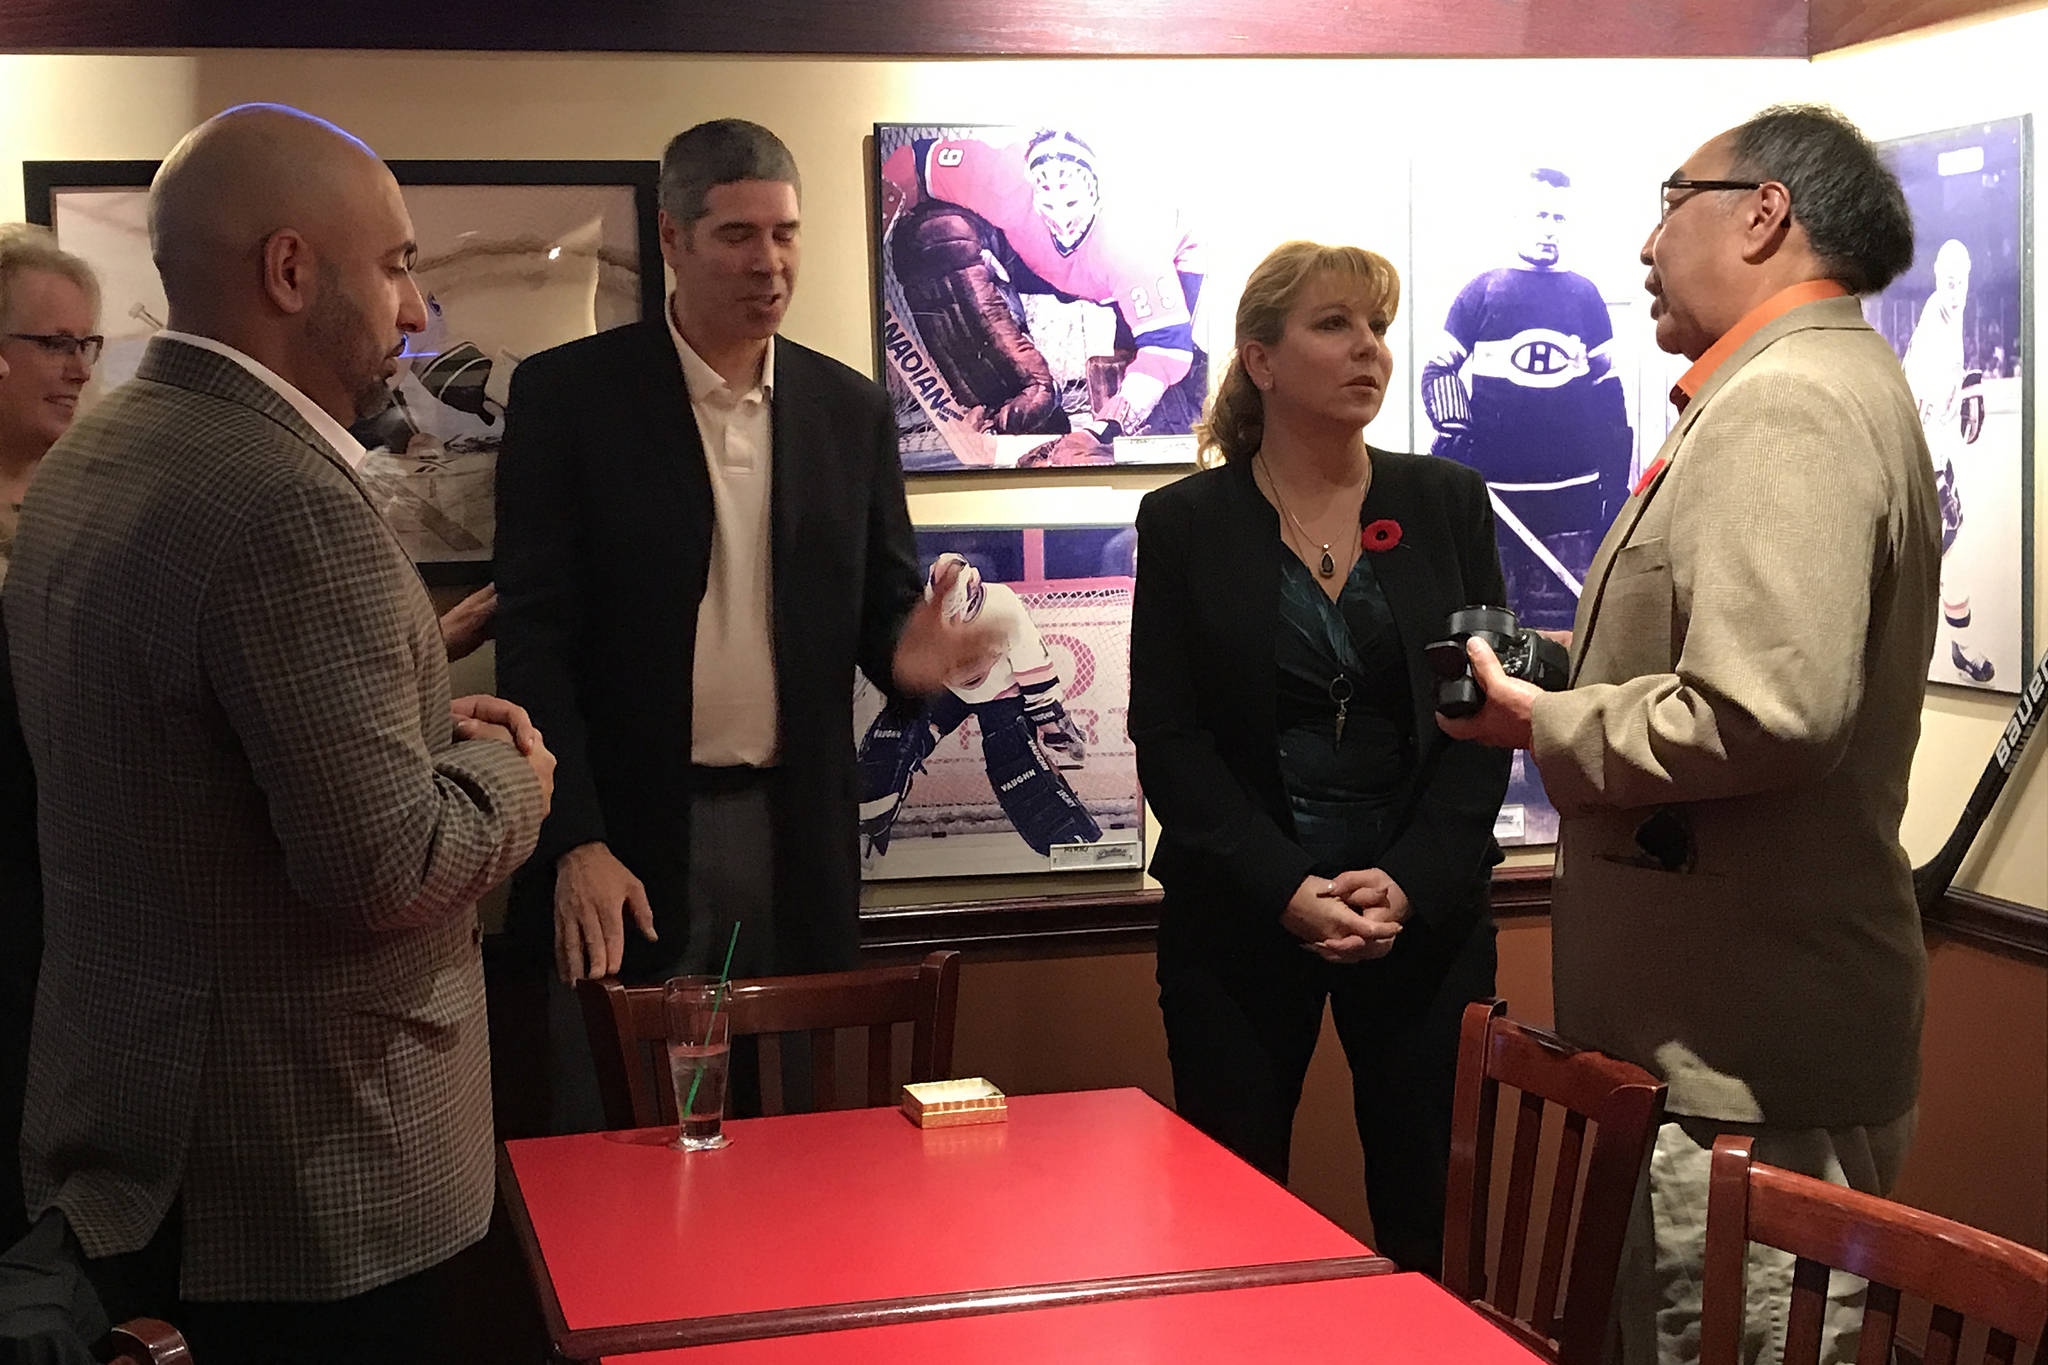 BC Liberal leadership candidate Dianne Watts, second from right, speaks with Jeff Cook from the Huu-ay-aht First Nations as others wait their turn at a meet and greet Saturday night in Port Alberni. SUSAN QUINN PHOTO